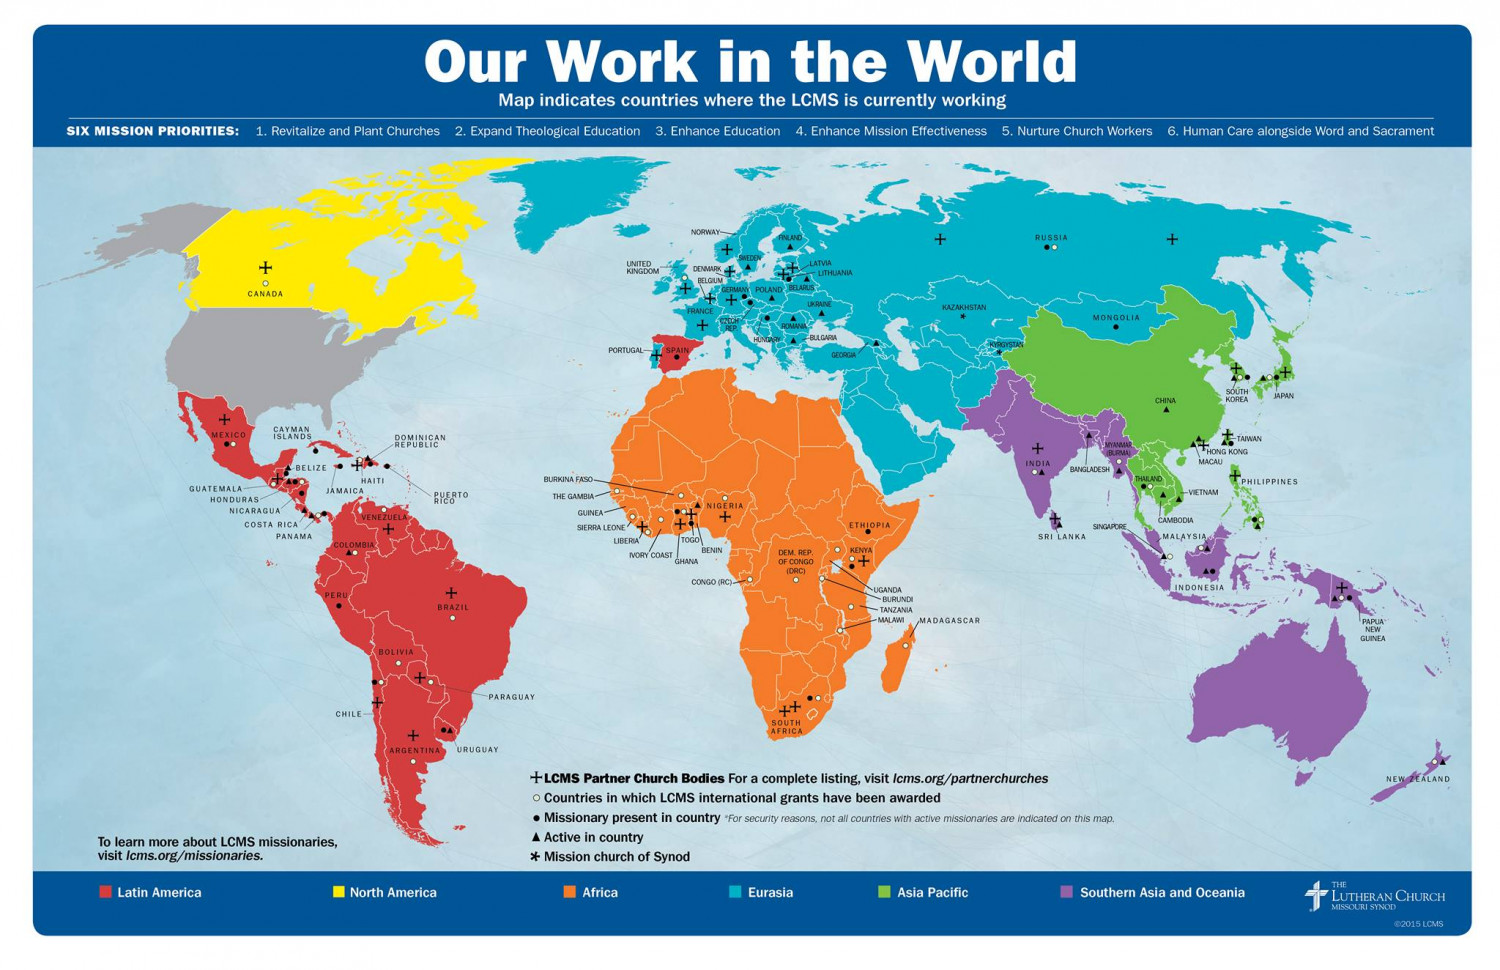 Our Work in the World — 2015 Infographic